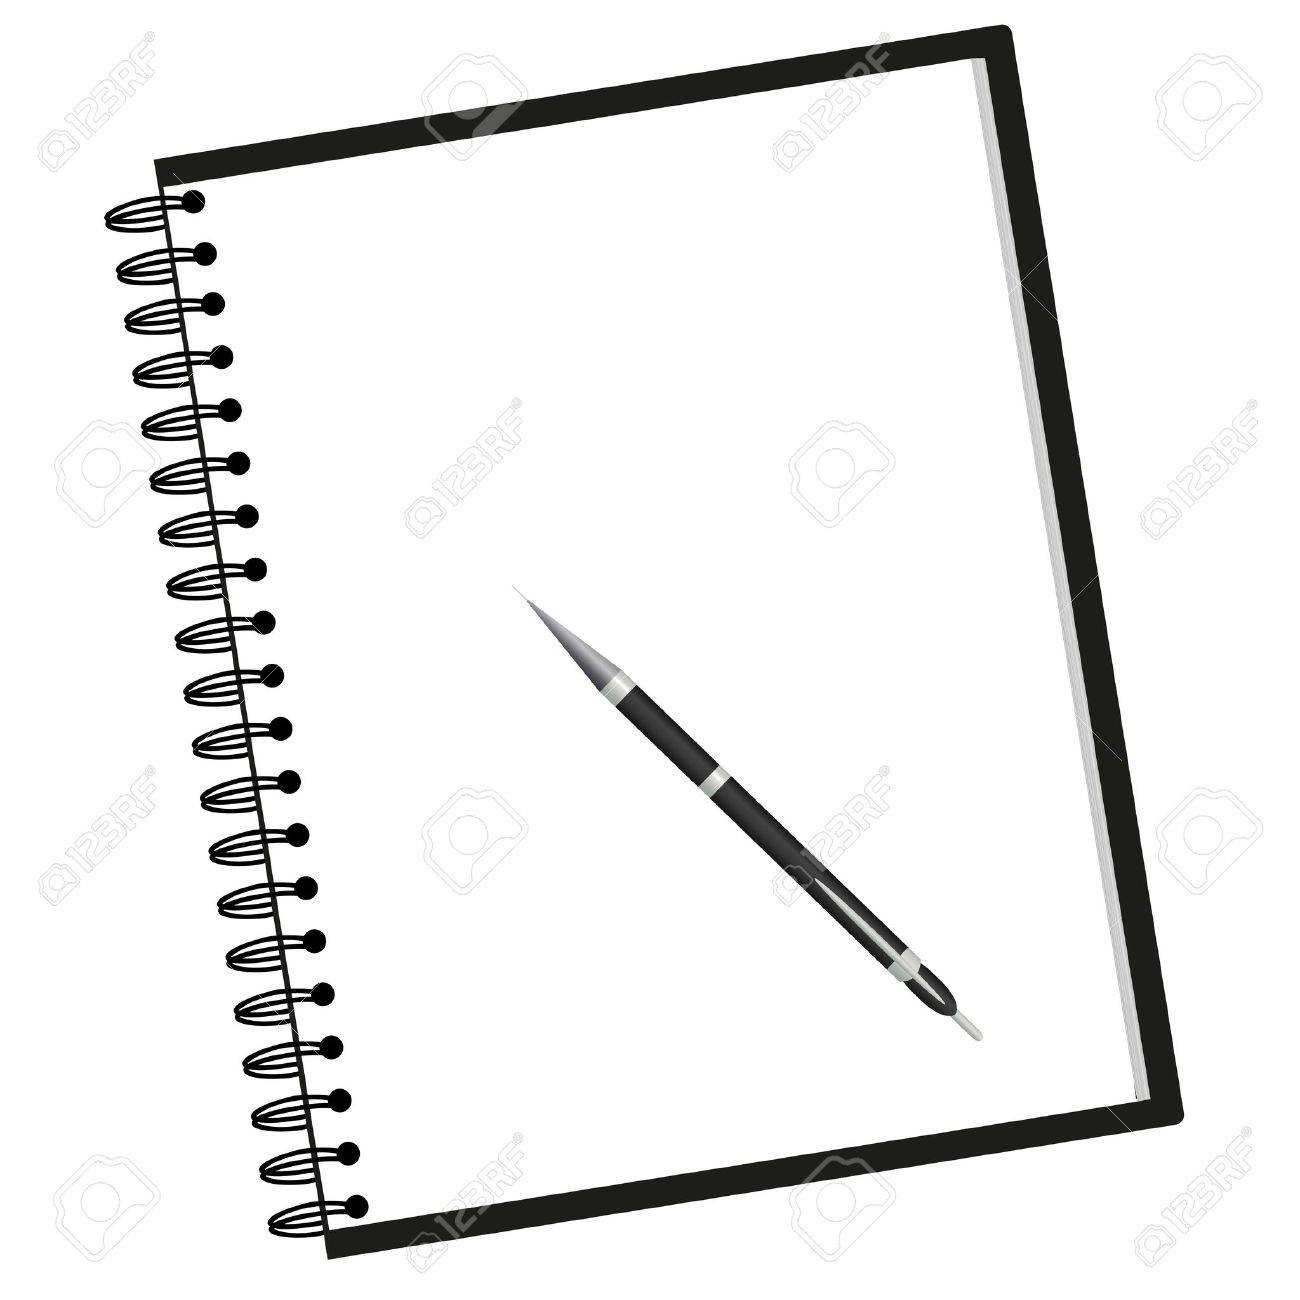 notebook clipart black and